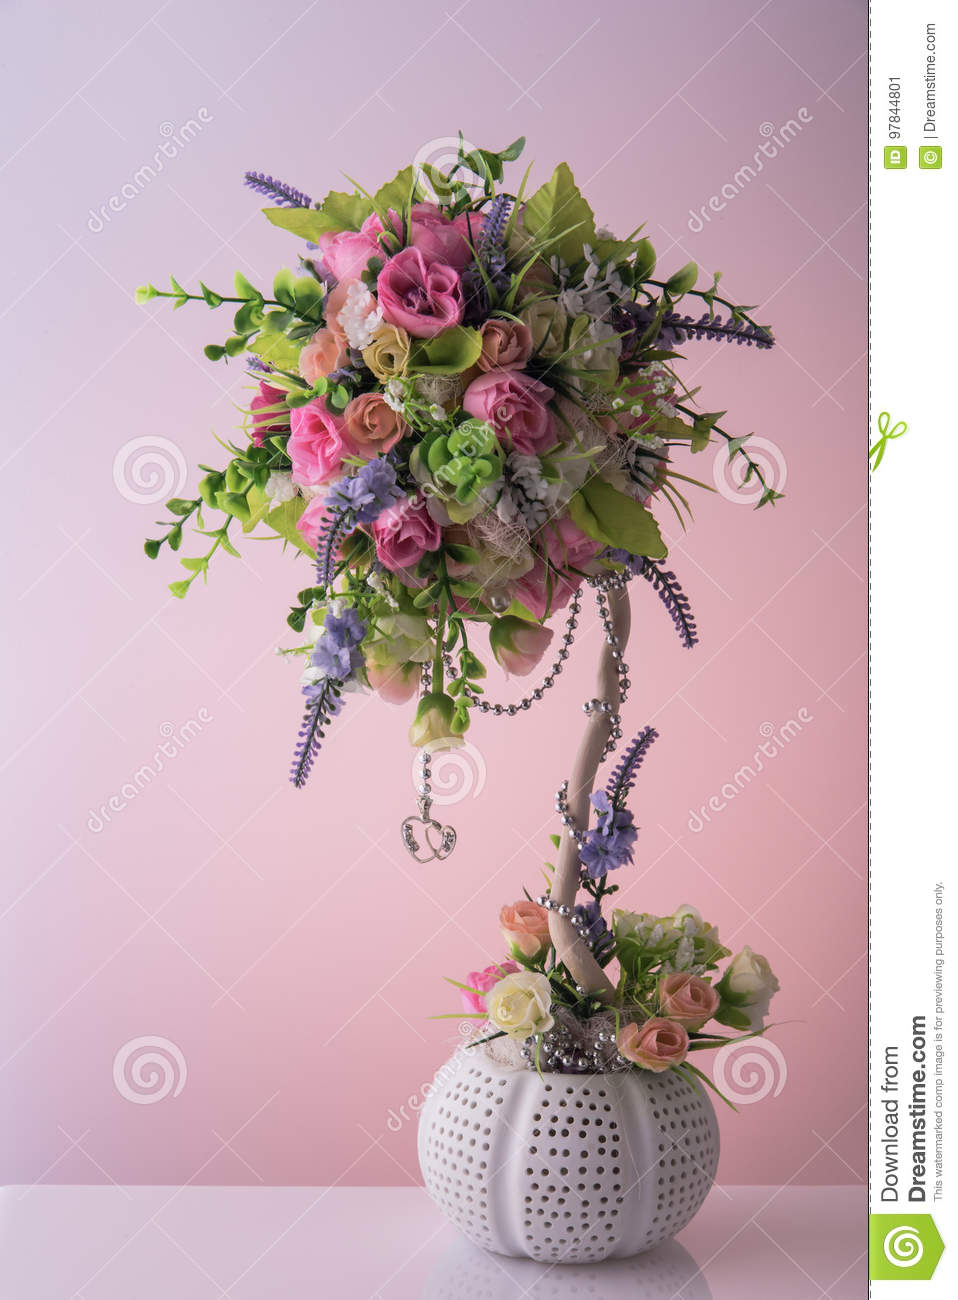 Artificial Bouquet Of Diffirent Beautiful Small Flowers With Nice Silver Chain And Two Hanging Hearts Flower Pot Stock Image Image Of Beautiful Green 97844801